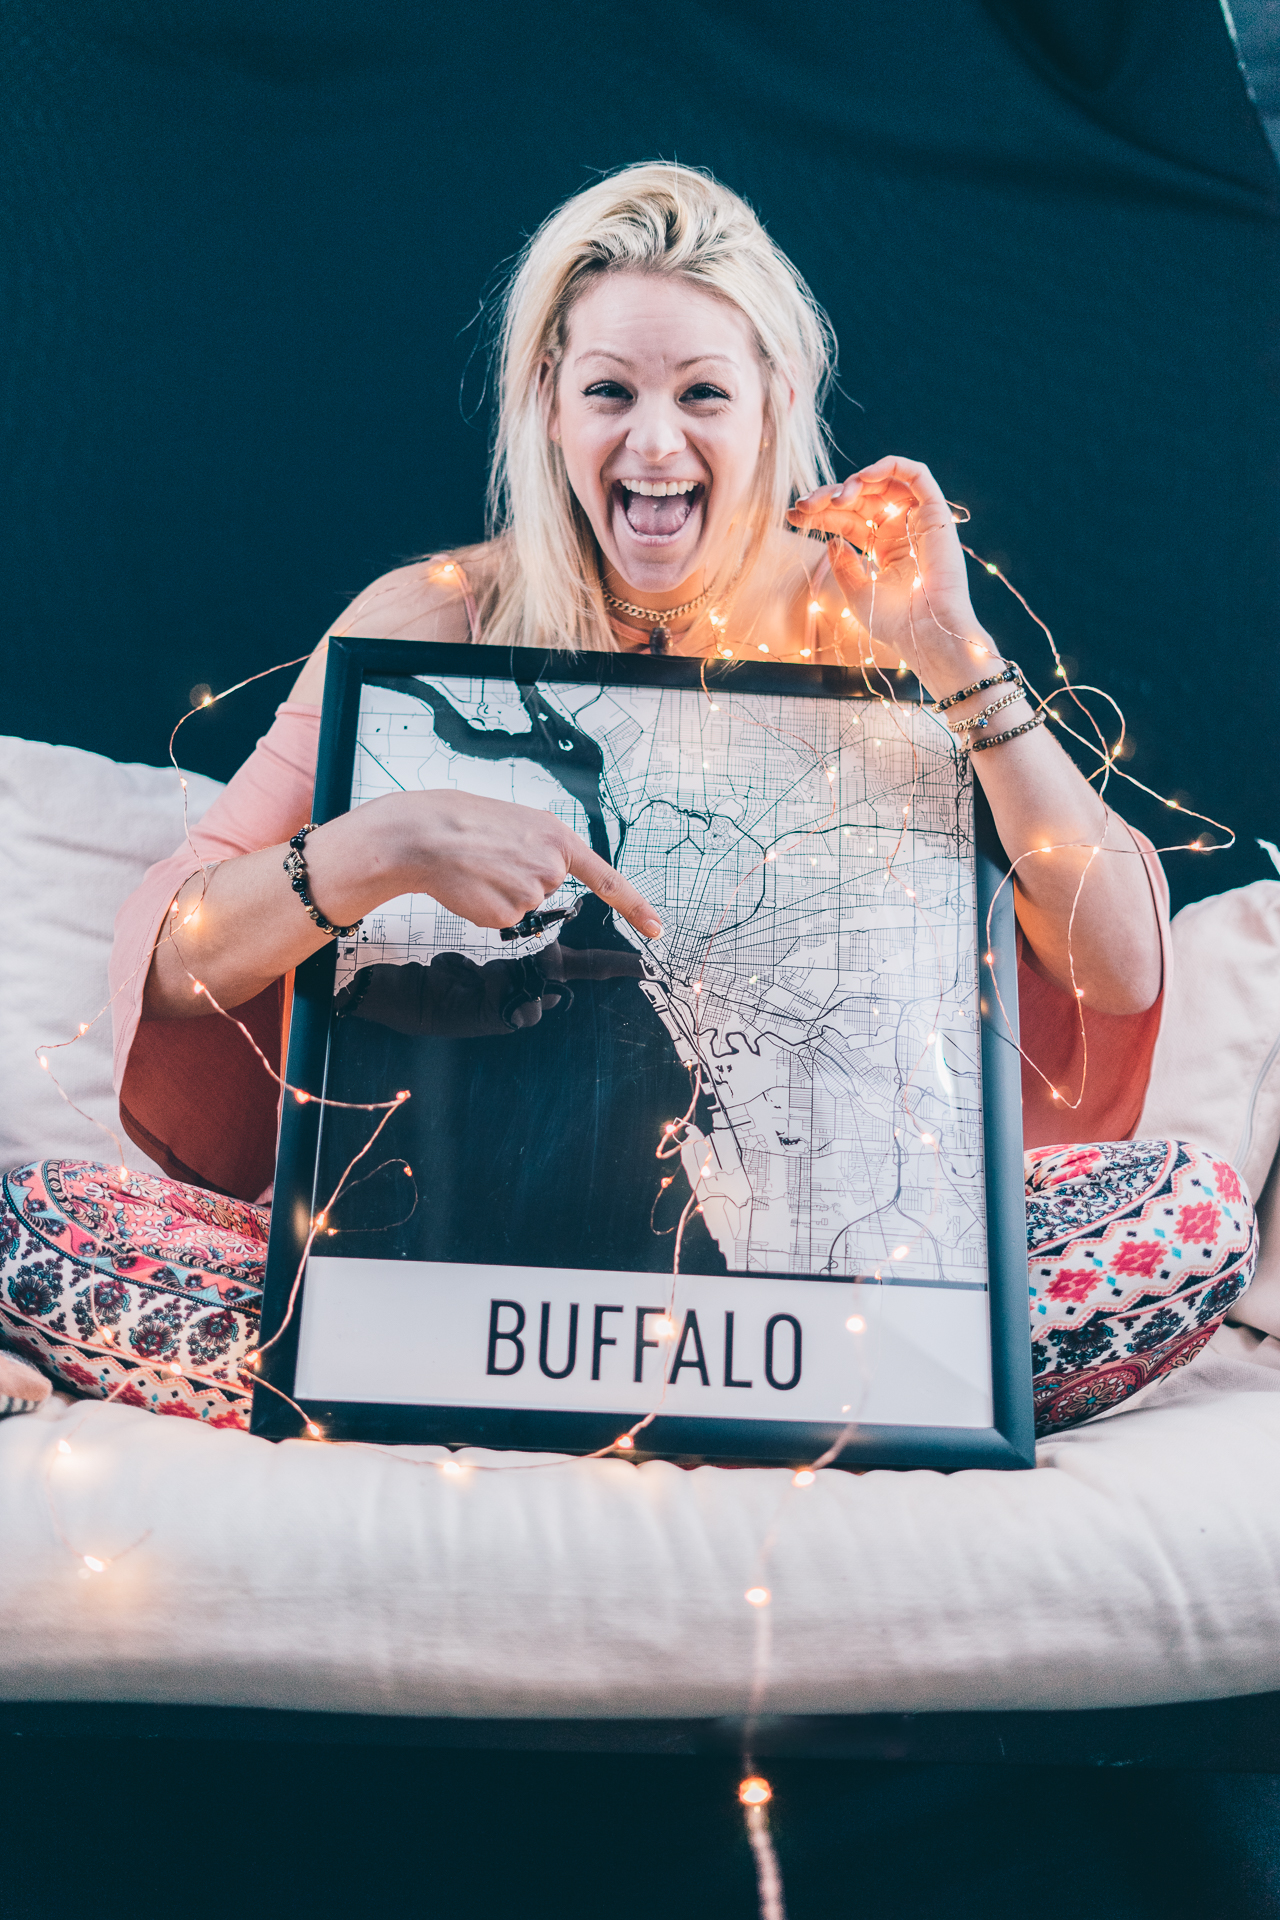 map of buffalo, maps of buffalo, buffalo art print, black and white city print, indie twenty, queen city map, queen city gypsy, fashion blog, buffalo blogger, buffalo fashion blogger, buffalo lifestyle blogger, seek axiom photography, rachel sweeney, blush boutique, blush boutique buffalo, elmwood shopping, modern map art, twinkle lights photography